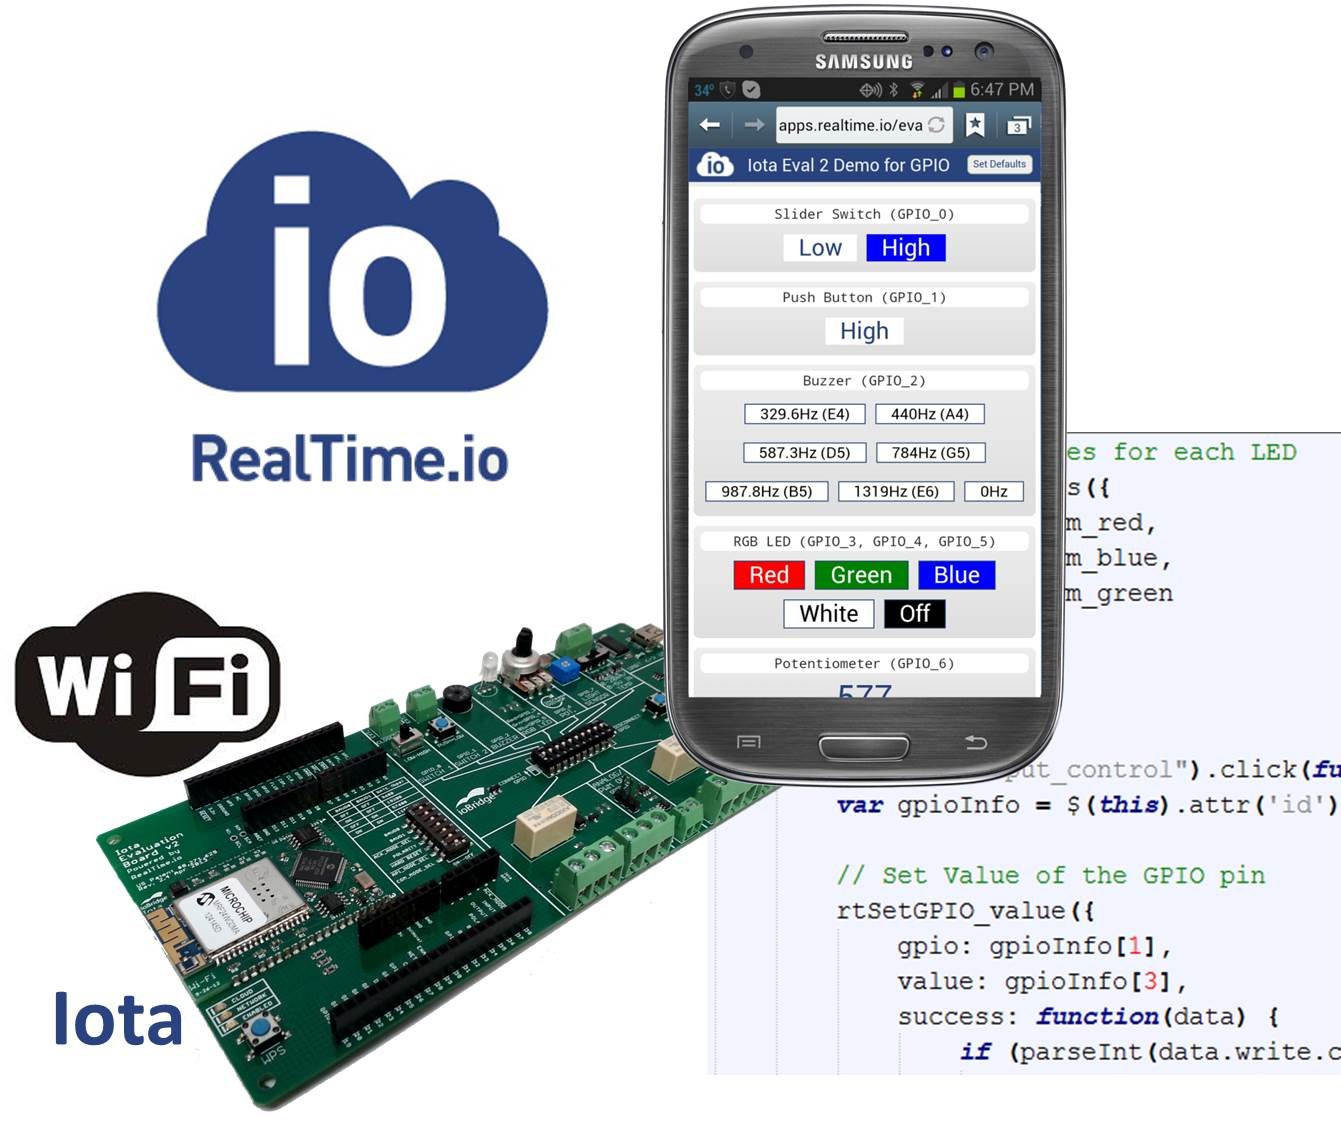 RealTime.io with Android App and Iota Module and Eval Board